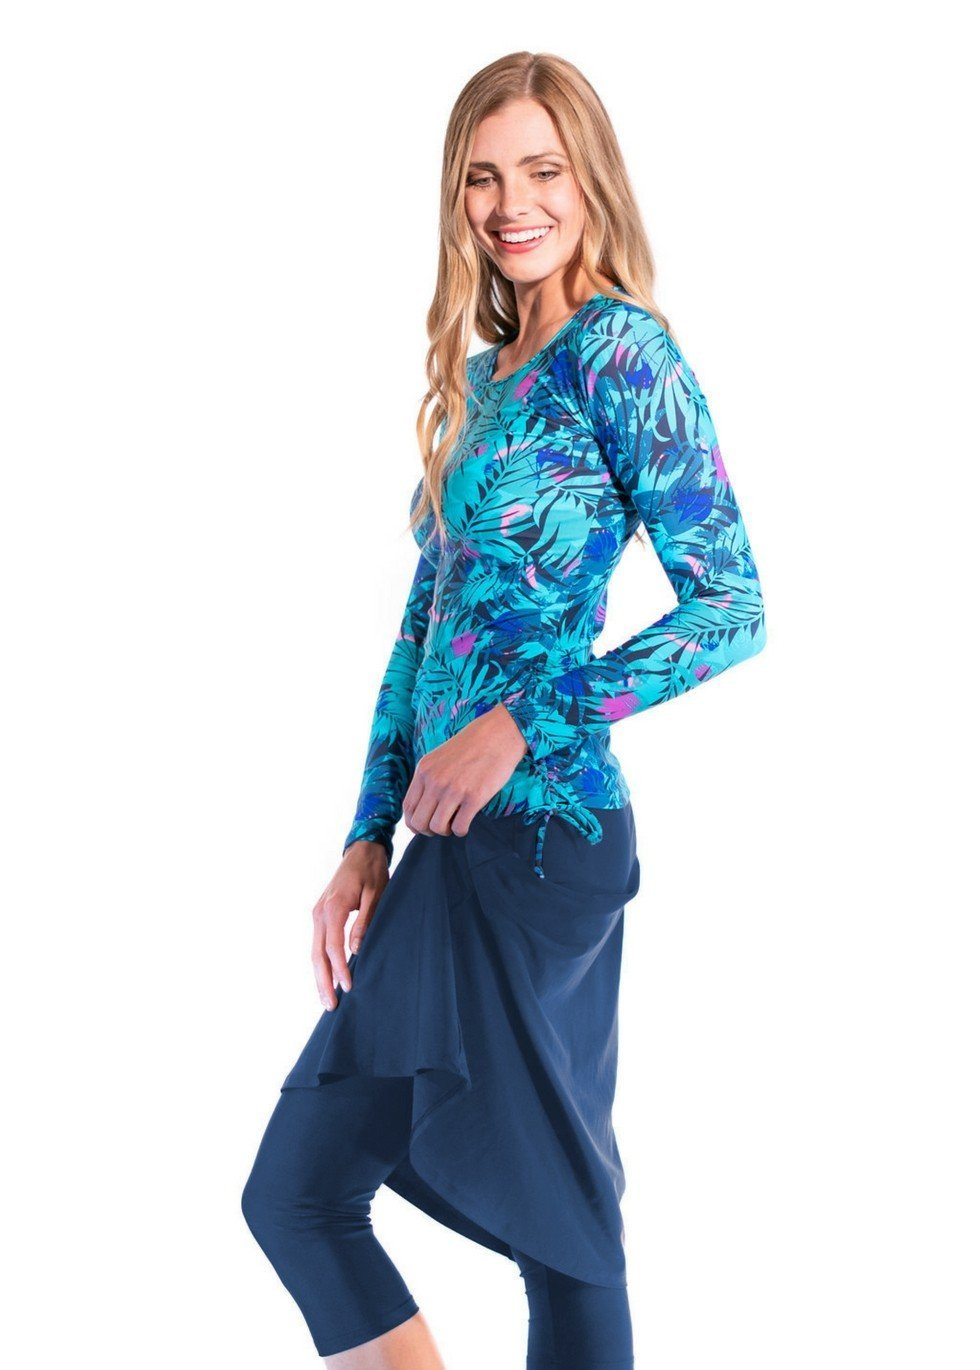 Ella Mae Modest Swimsuit for Women with Long Sleeve Swim Shirt and Skirt with Knee Length Swim Capri Leggings (S-XXXL)